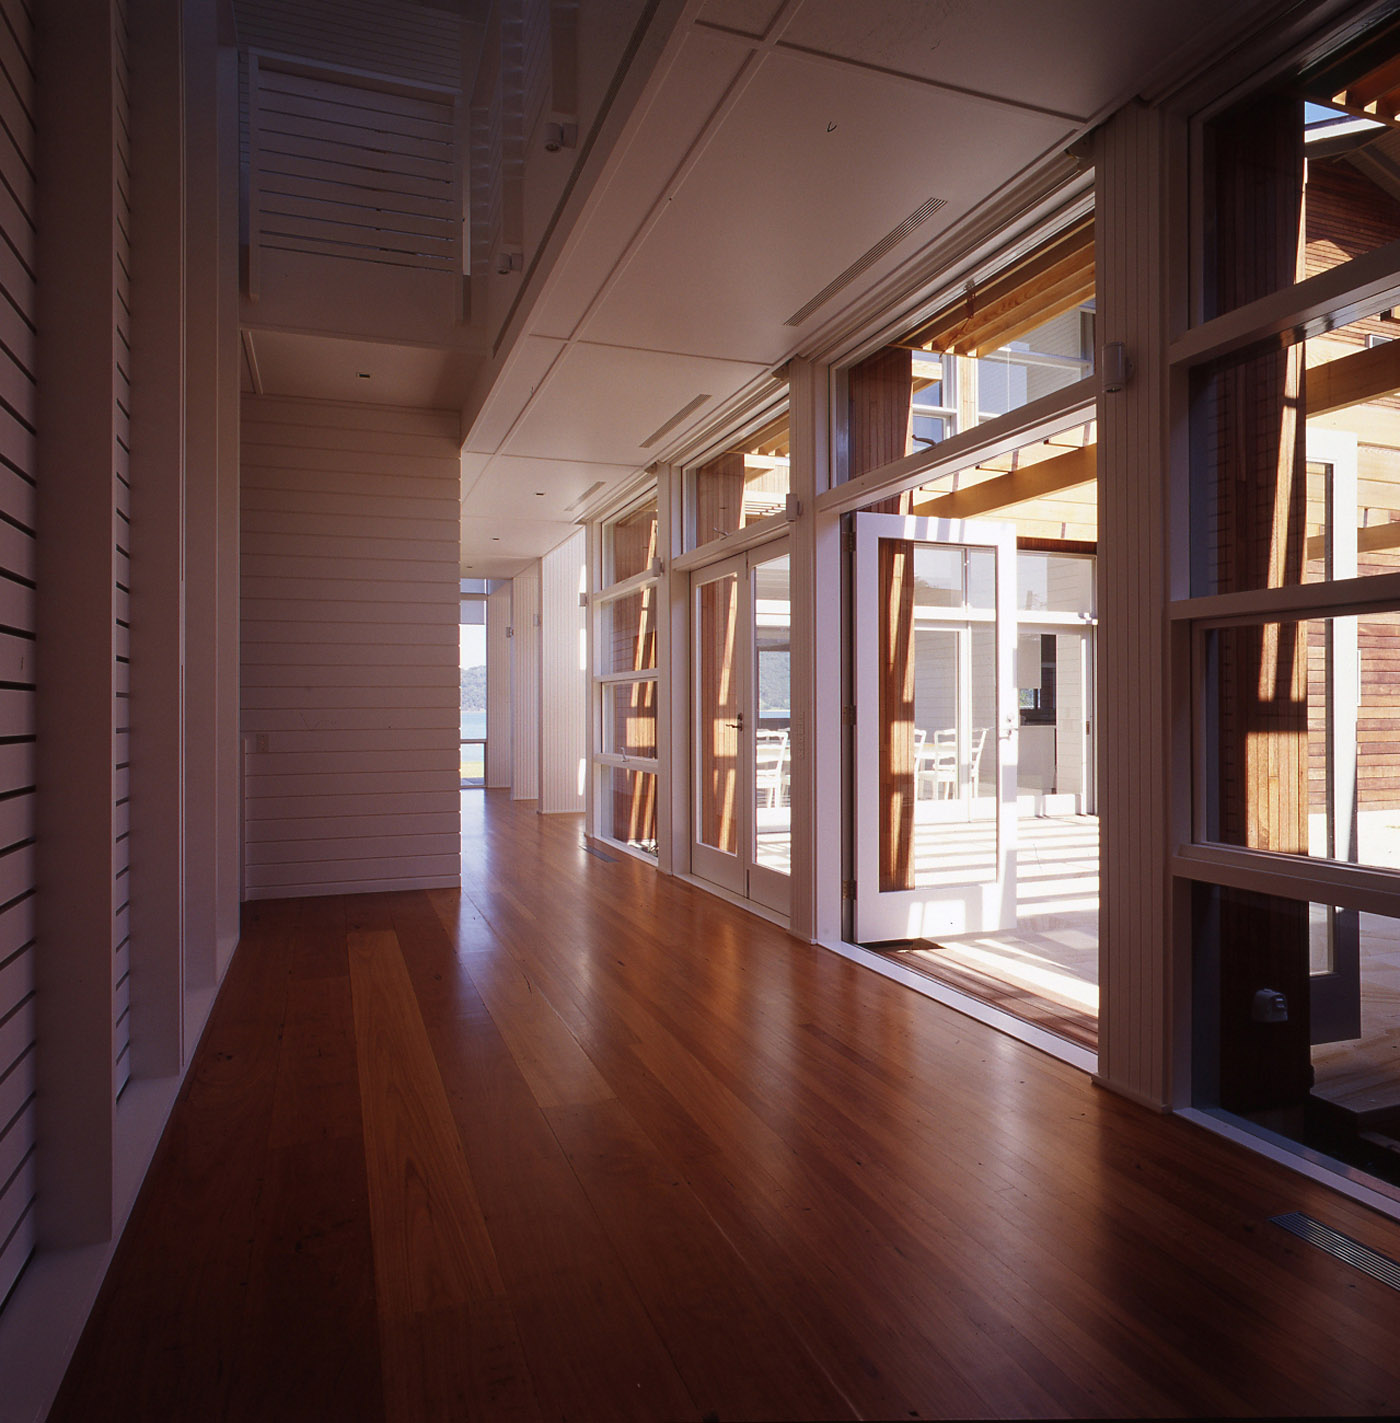 Pittwater House by Sydney award winning residential architecture office Sam Crawford Architects. Corridor connected to courtyard.